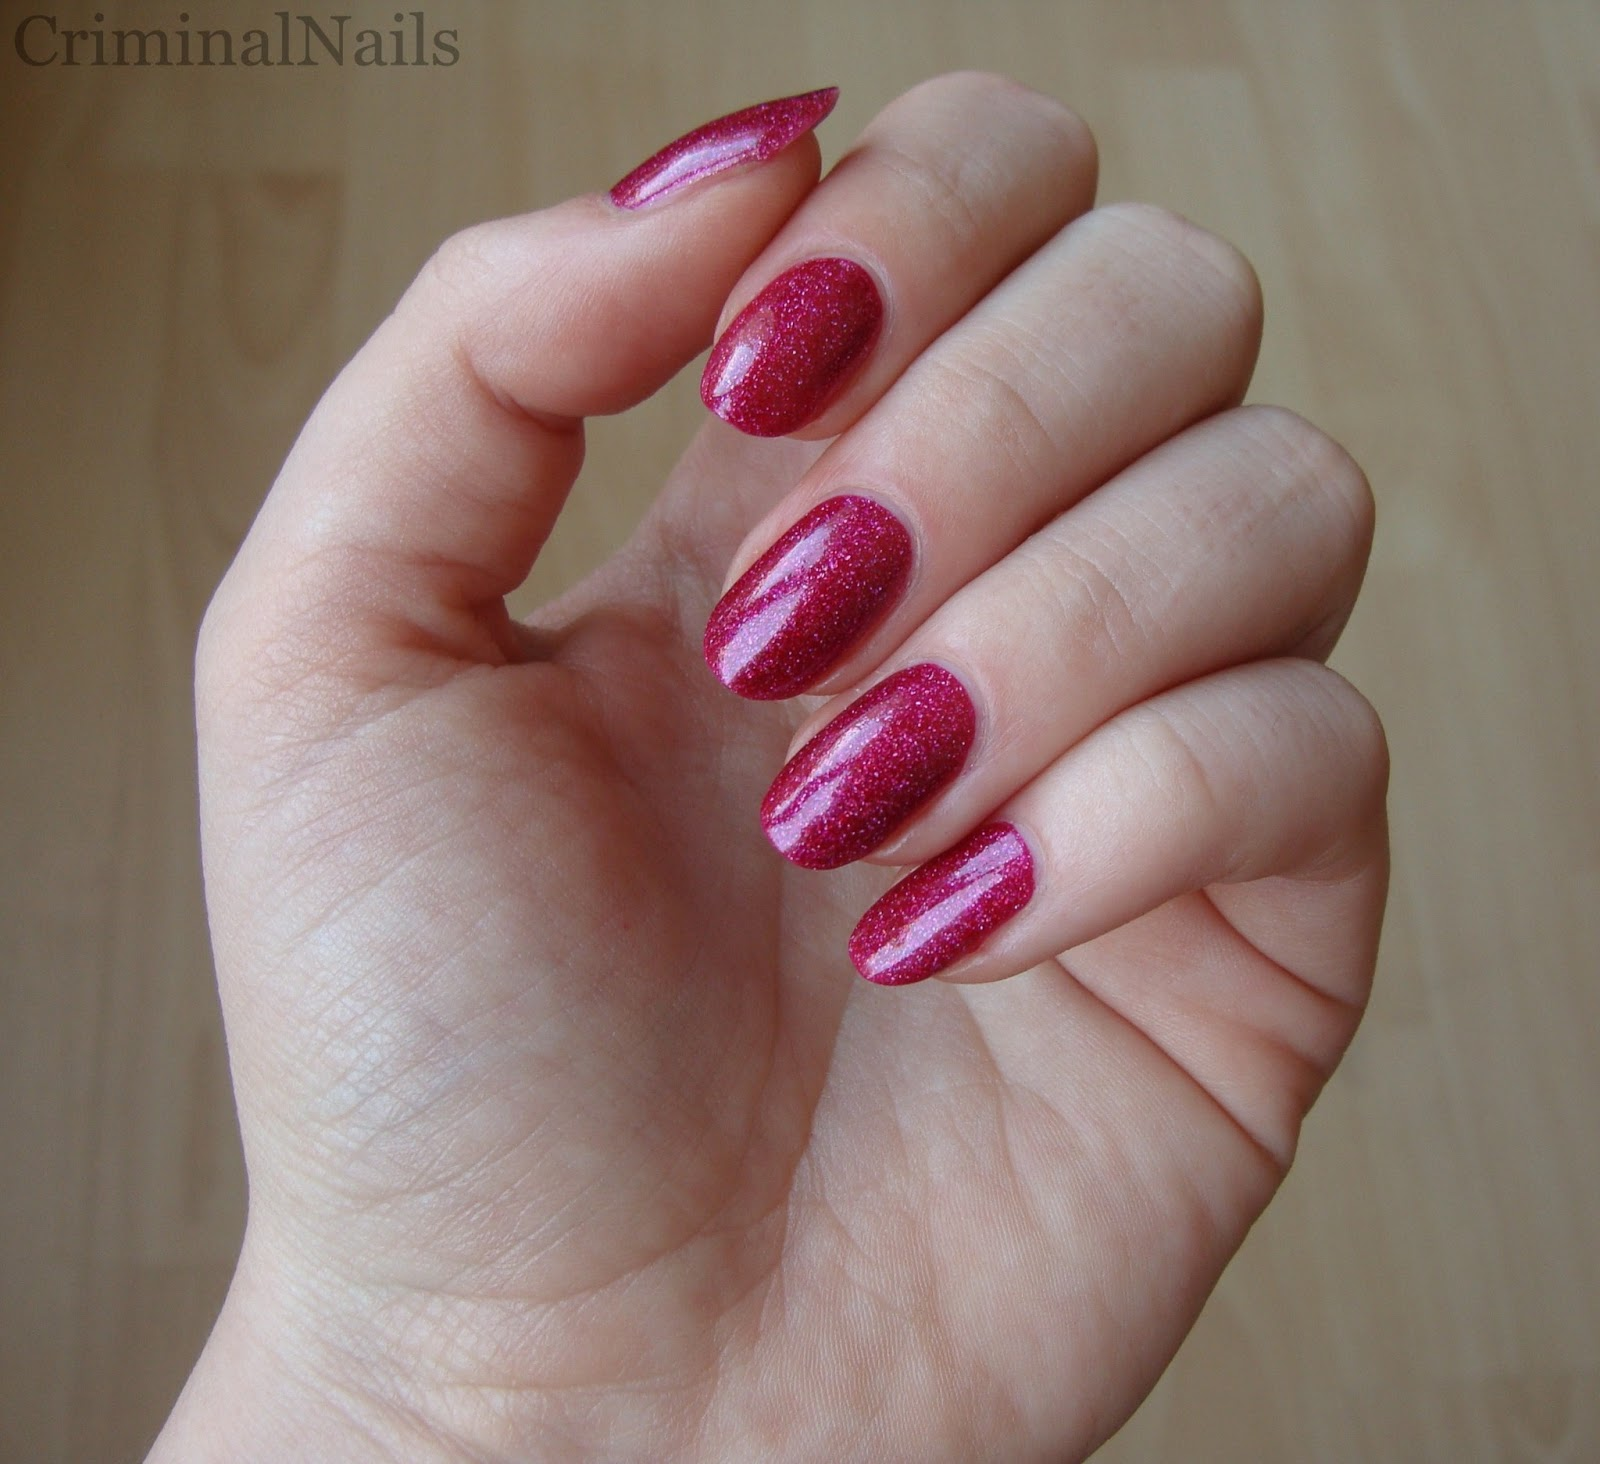 Criminal Nails: ABC Challenge: Letter P - Pink, Orly Miss Conduct